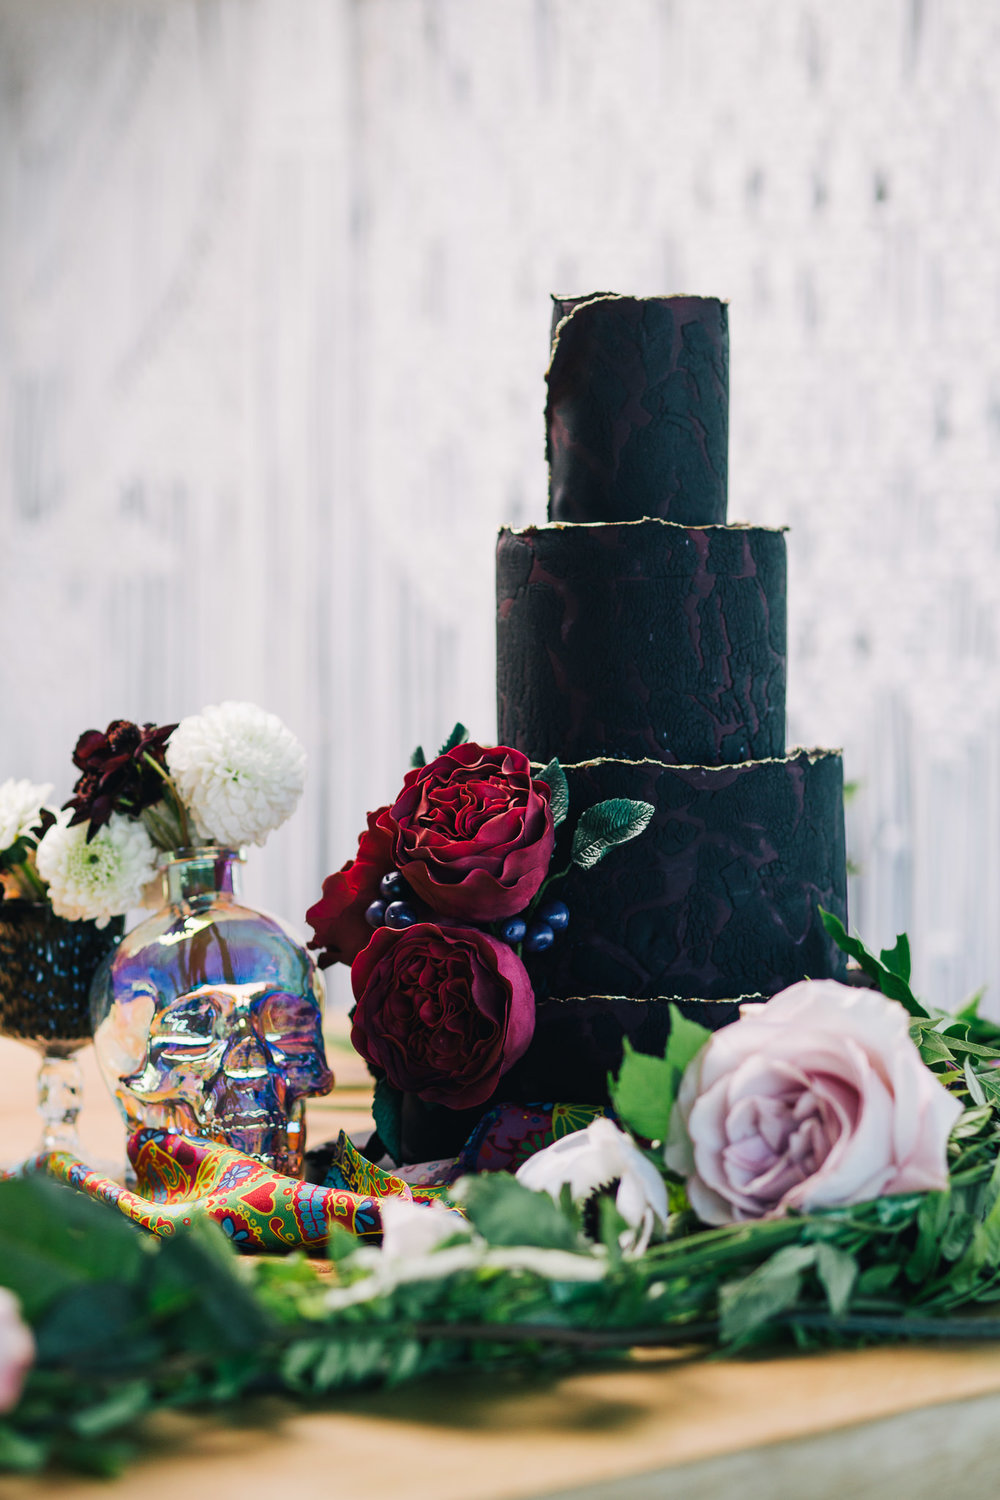 Rock'n'Roll cake Composition | Image courtesy of Adj Brown